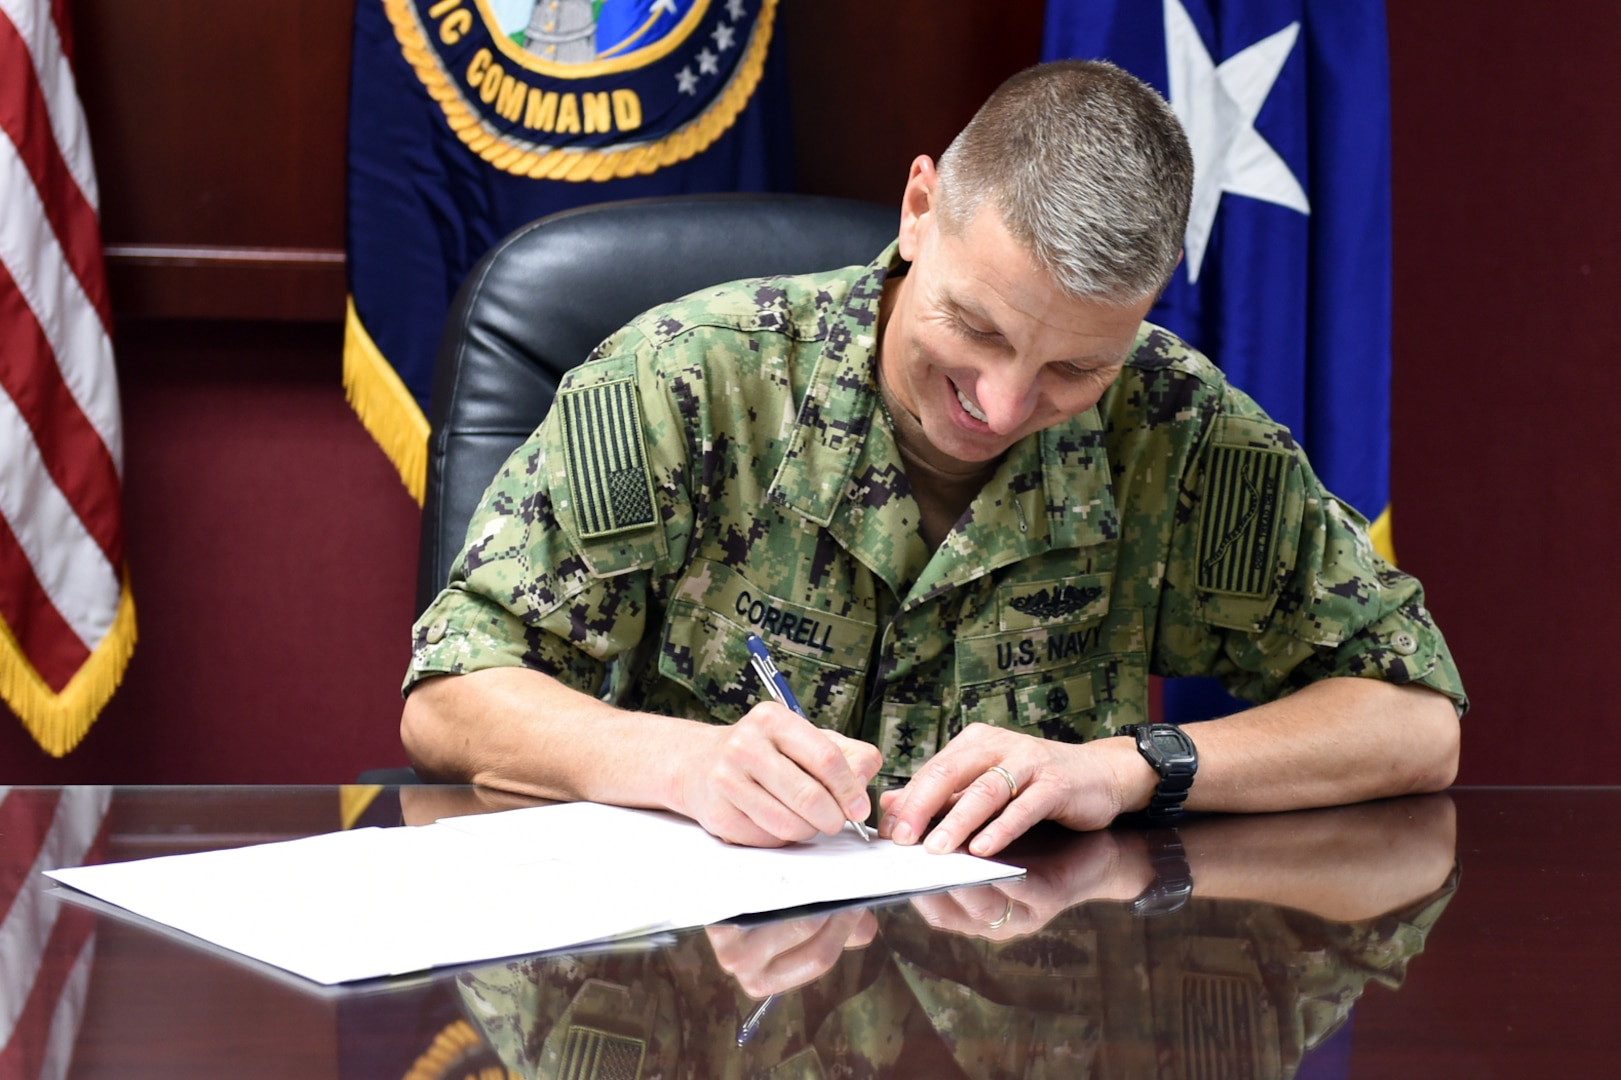 U.S. Navy Rear Adm. Richard Correll, U.S. Strategic Command (USSTRATCOM) director of plans and policy, signs an agreement to share Space Situational Awareness services and information with Netherlands at USSTRATCOM headquarters on Offutt Air Force Base, Neb., Sept. 21, 2018.